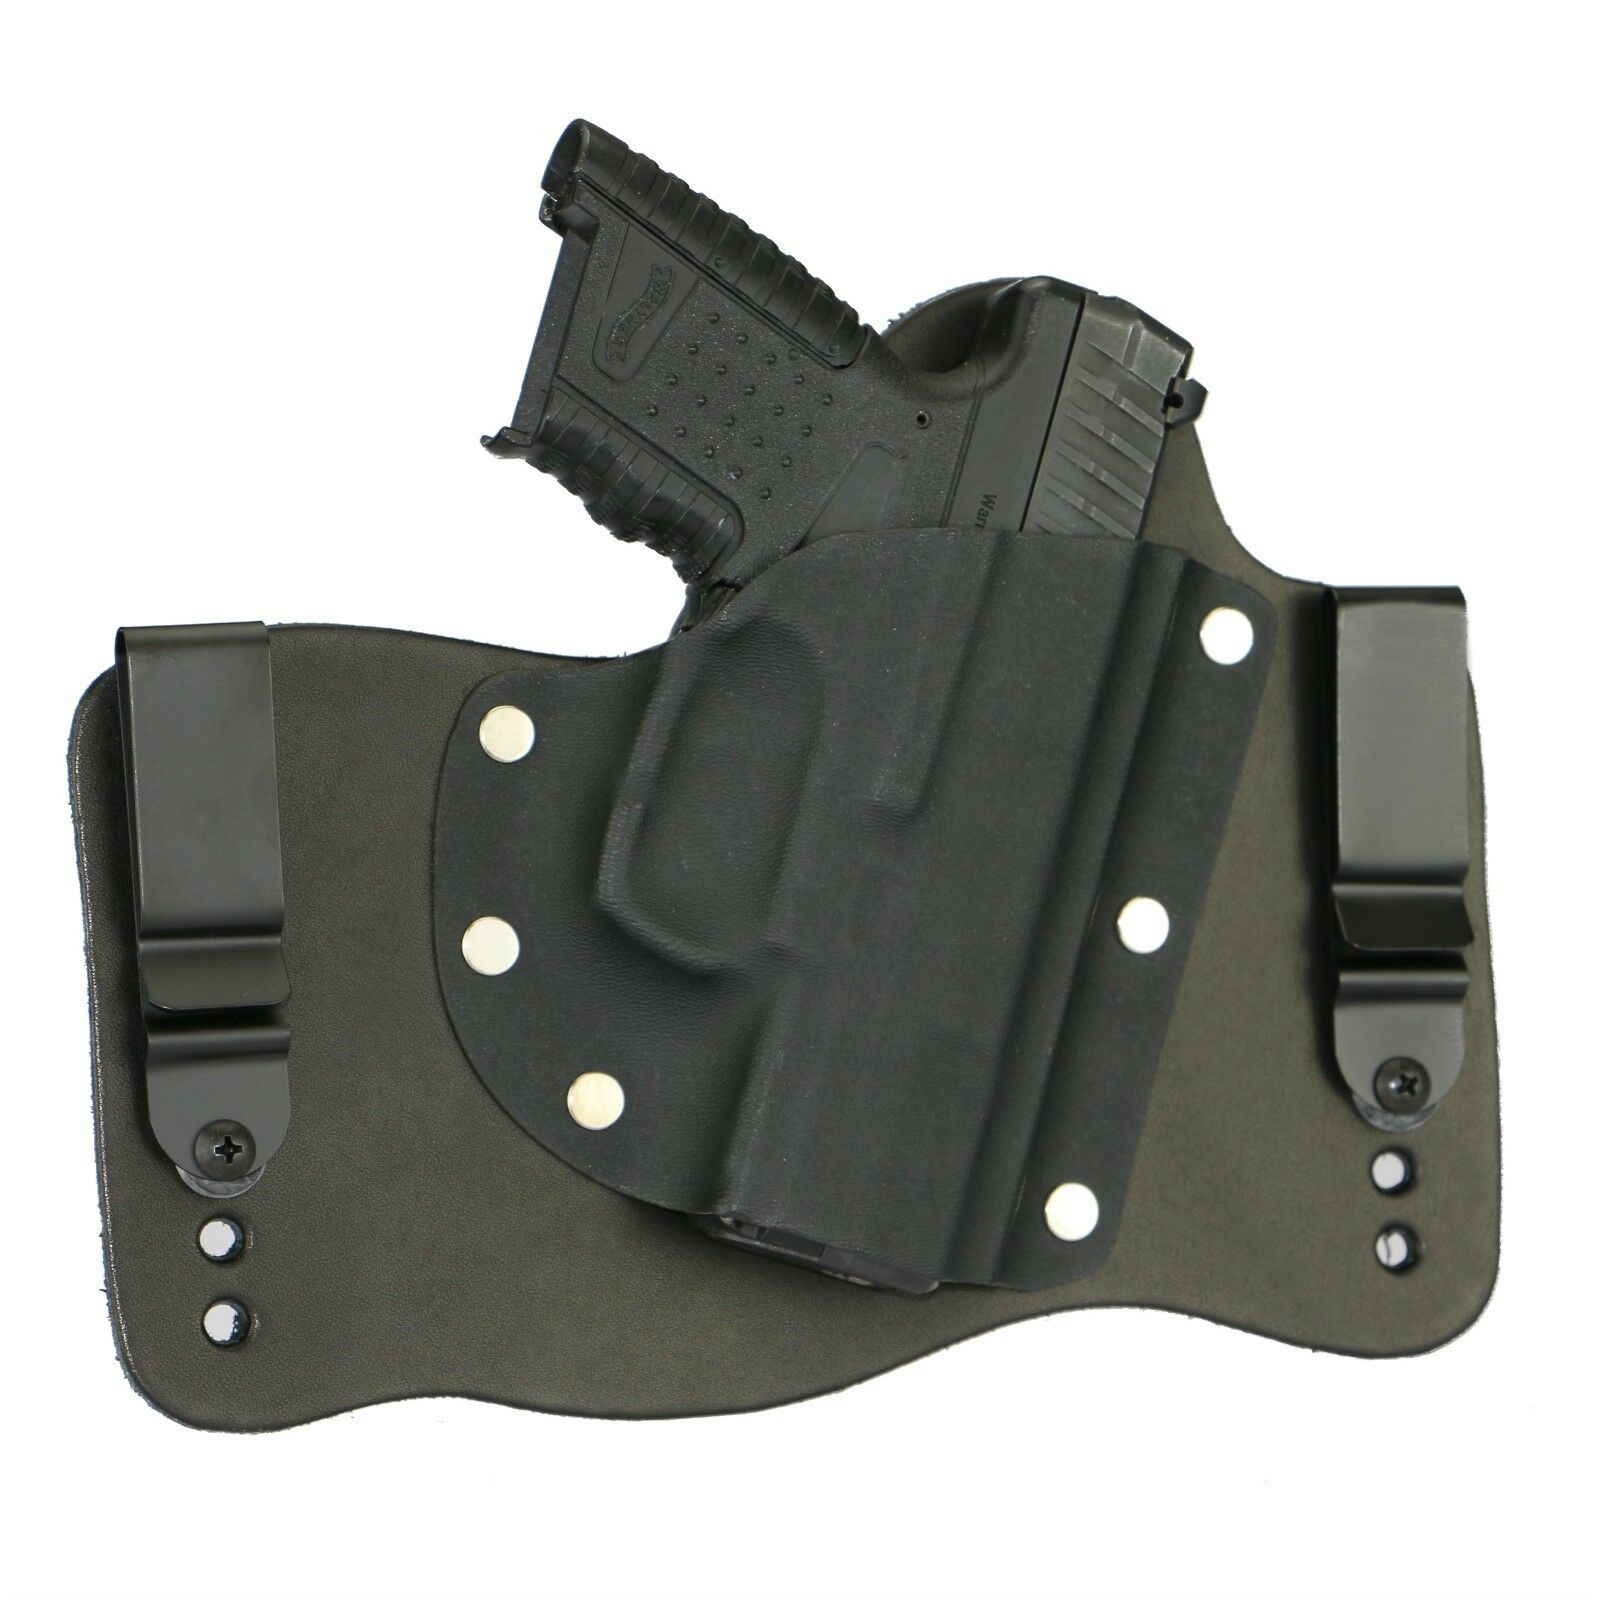 foxx leather kydex iwb hybrid holster walther pps m1 black right